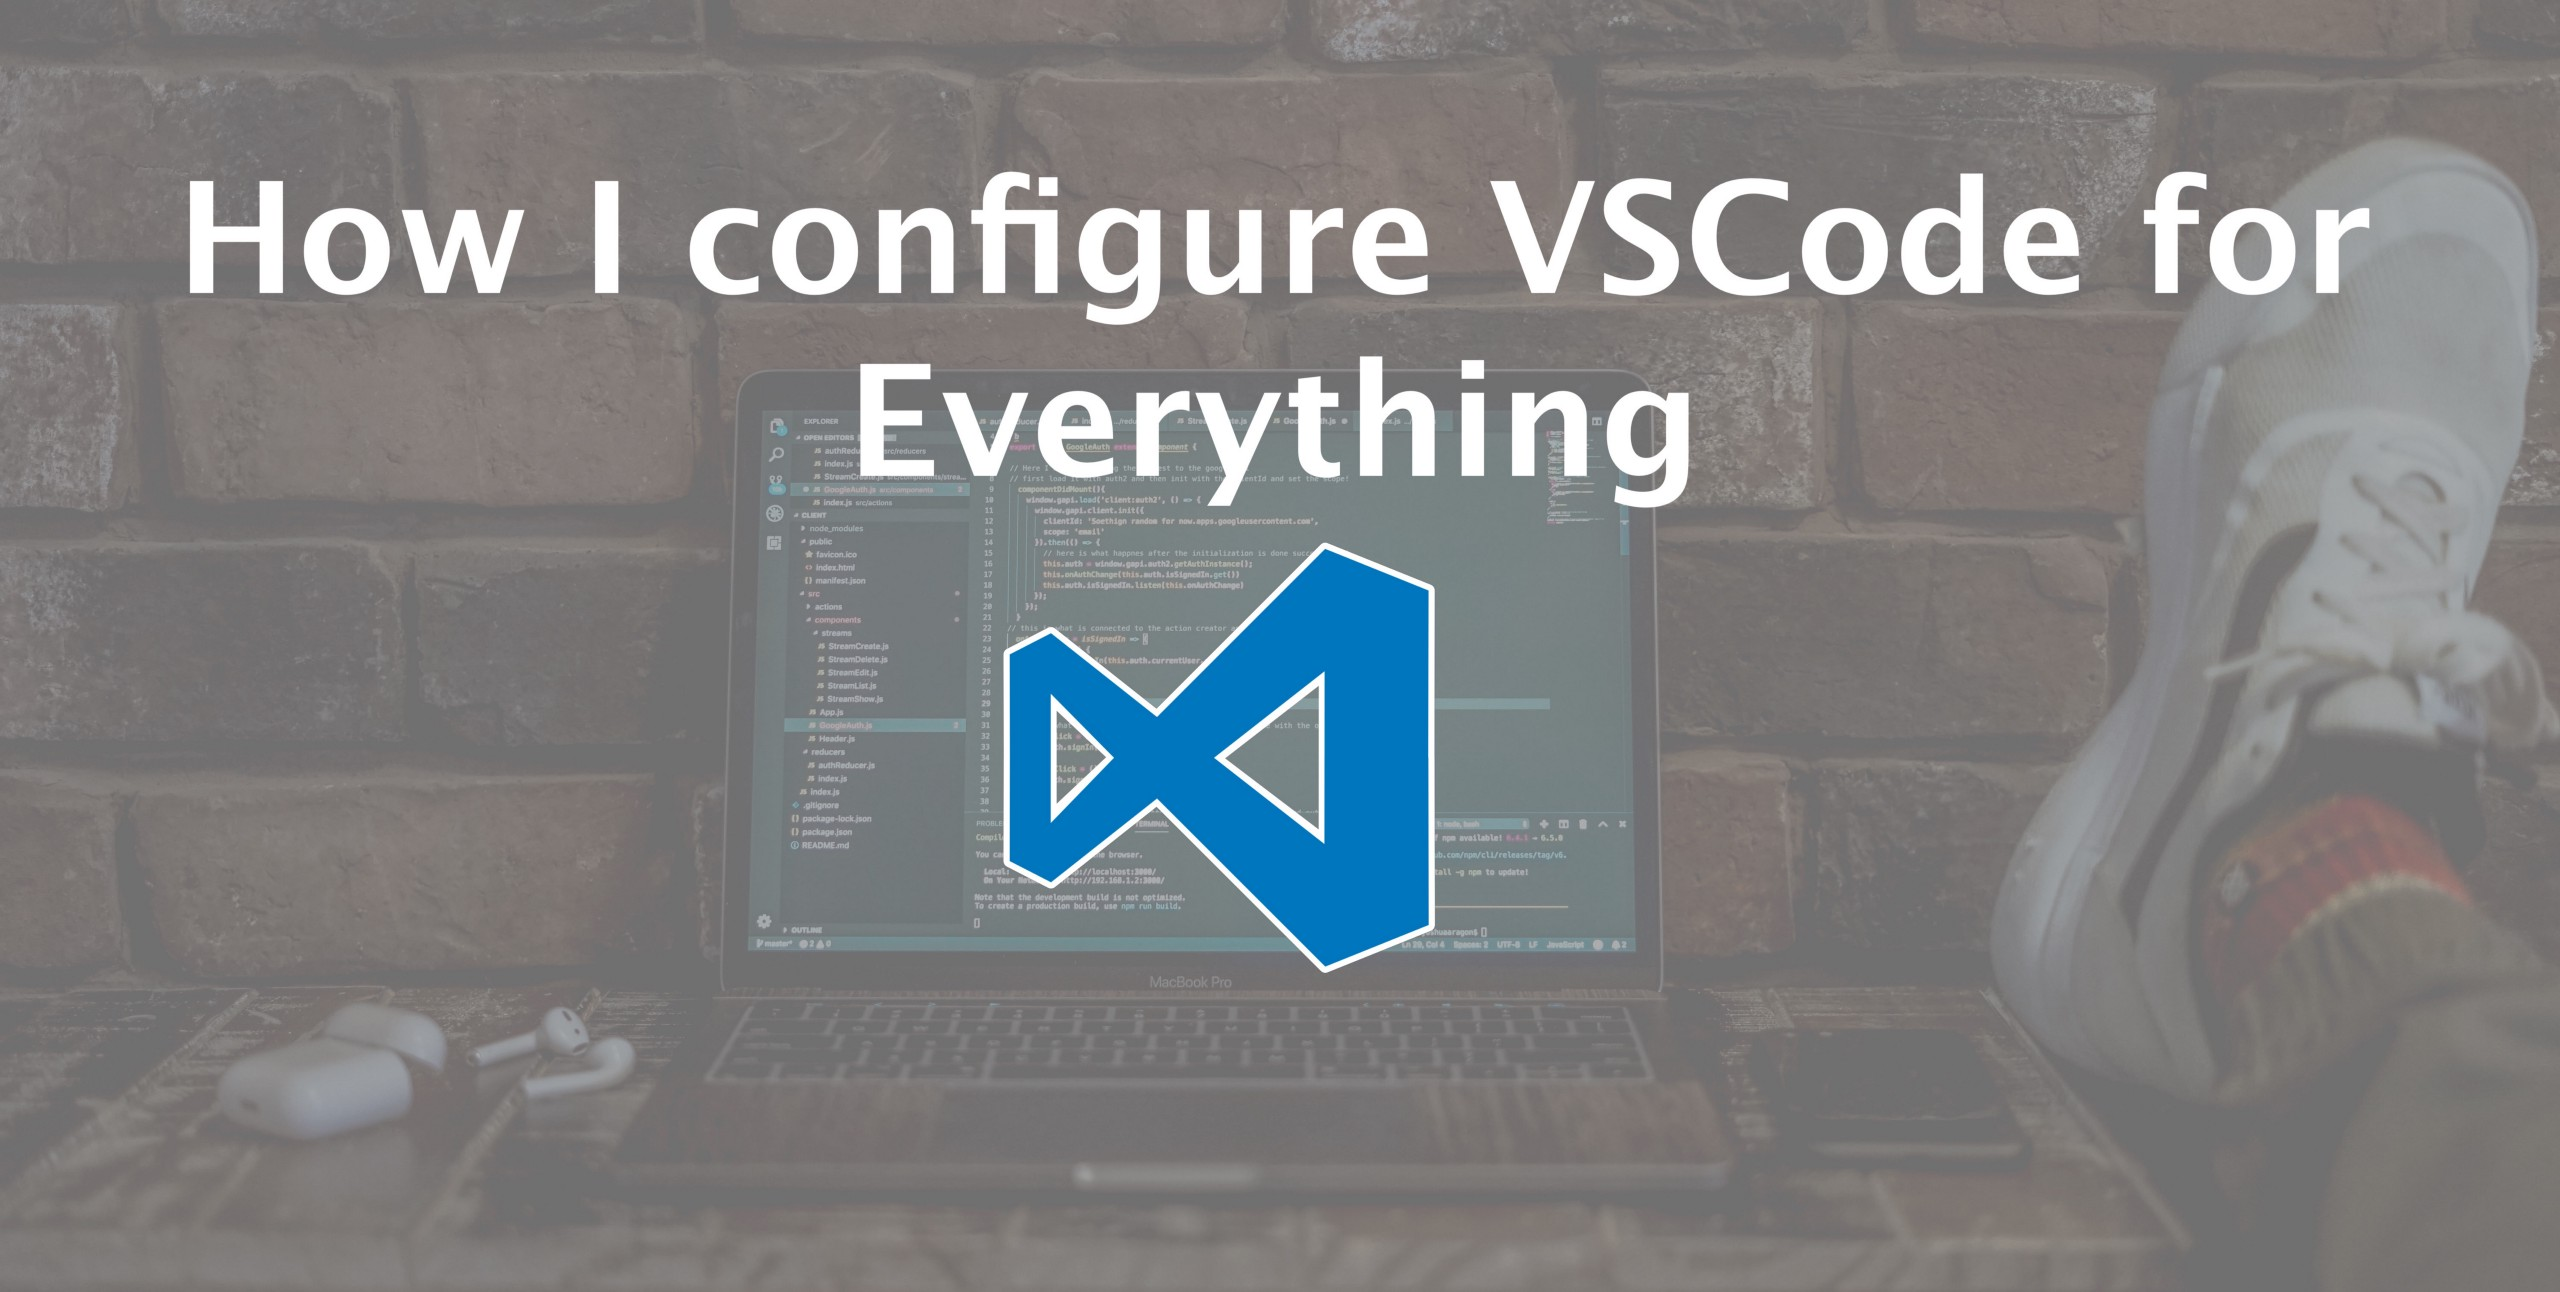 How I configure VSCode for Everything